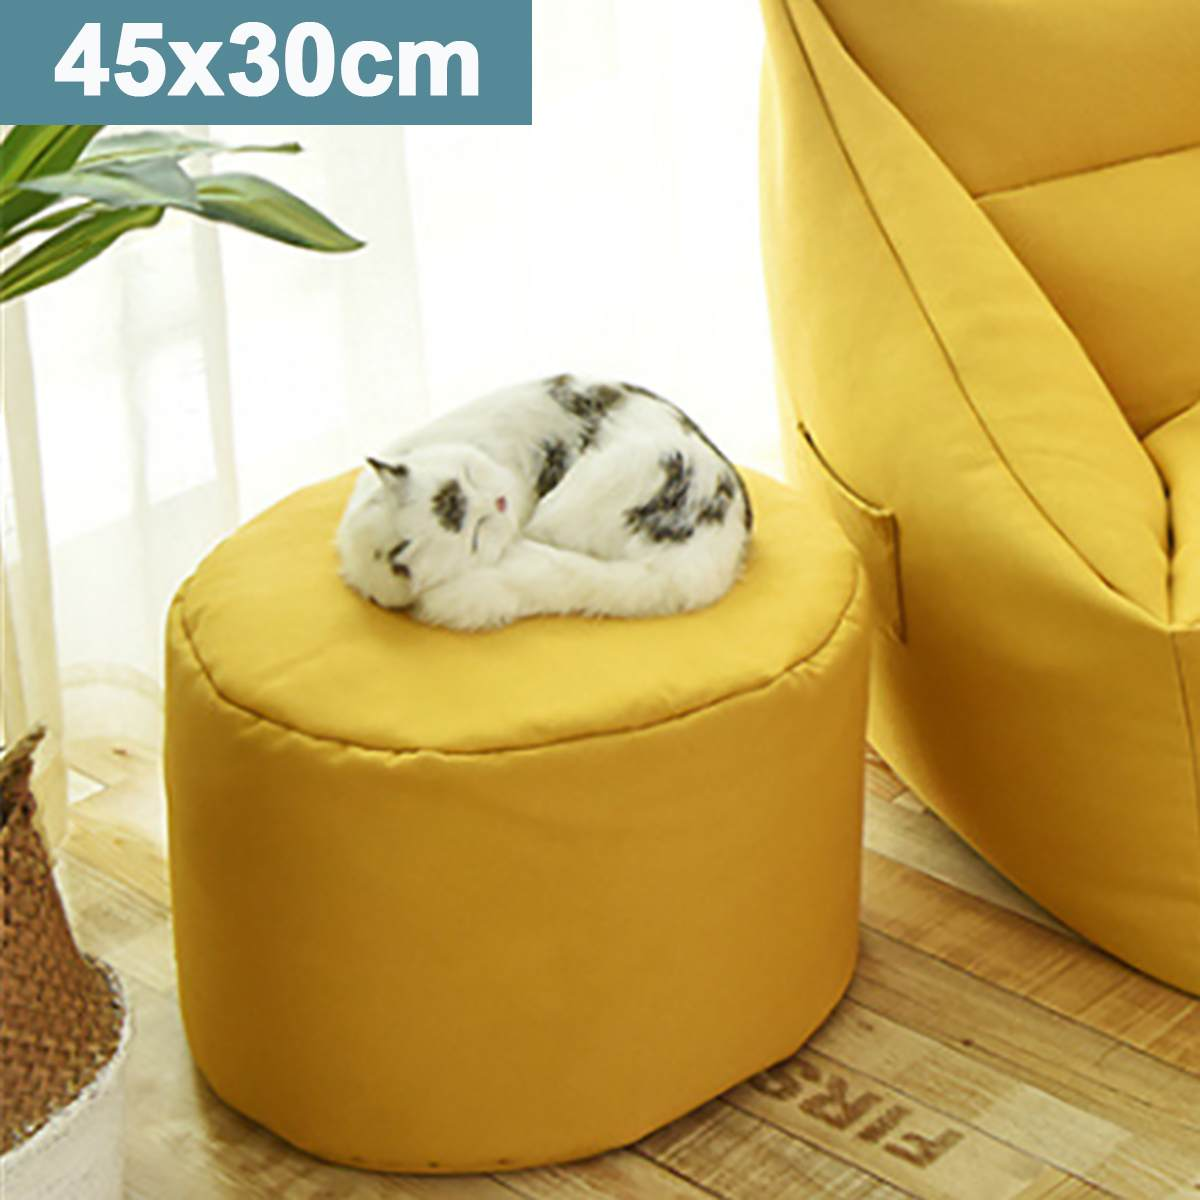 Yellow Large Lazy BeanBag Sofas Waterproof Animal Storage Toy Bean Bag Solid Color Chair Cover Beanbag Sofas Without Lining